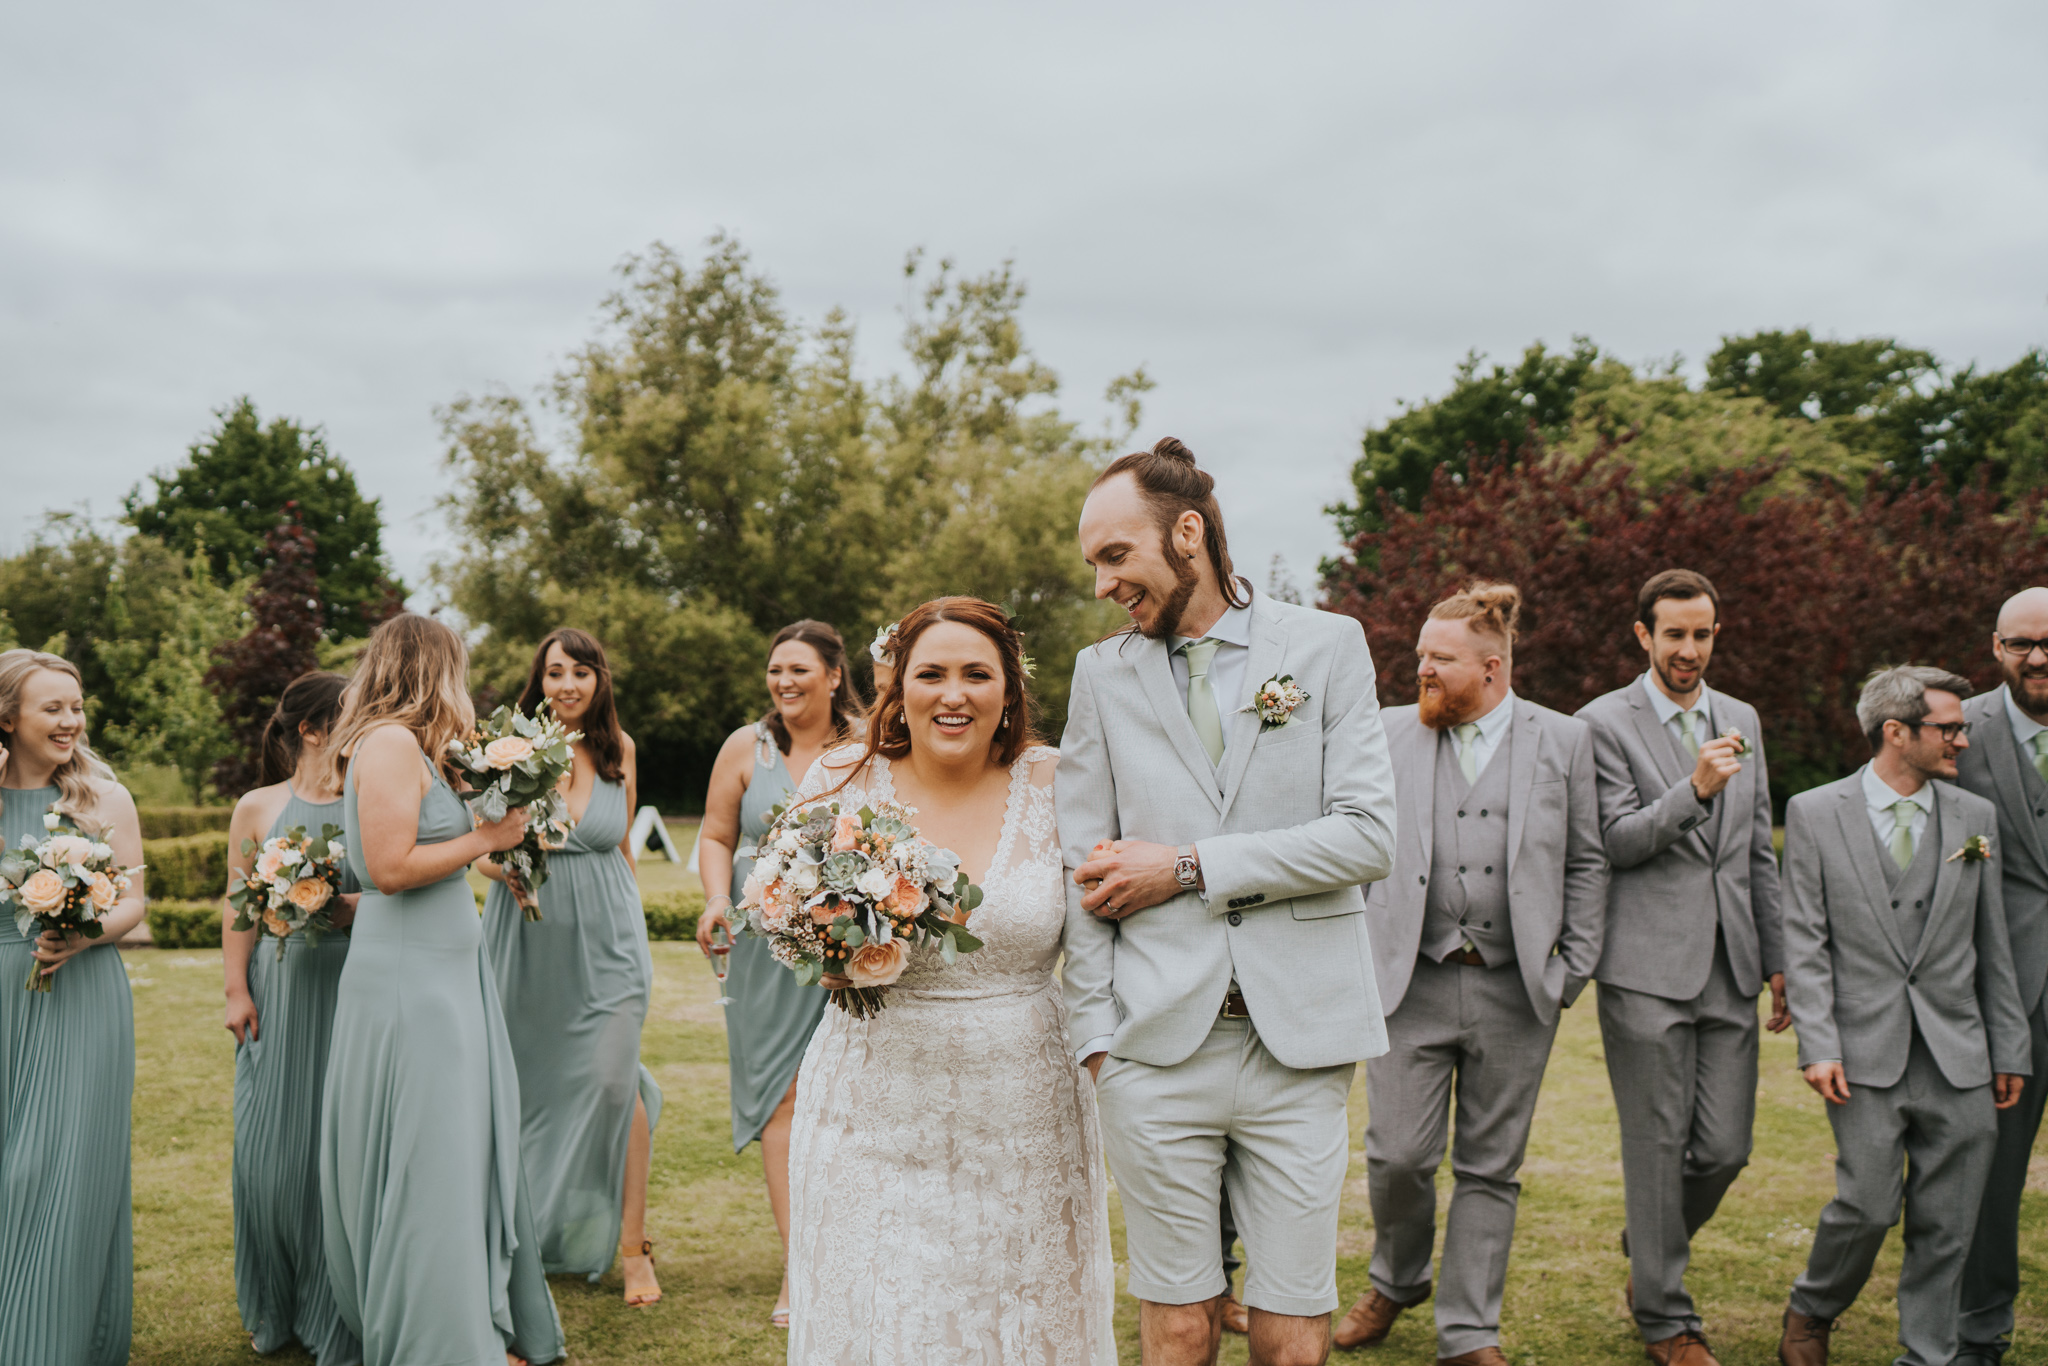 hayley-sam-secret-garden-kent-boho-wedding-grace-elizabeth-colchester-essex-alternative-wedding-photographer-essex-suffolk-norfolk-devon (27 of 36).jpg